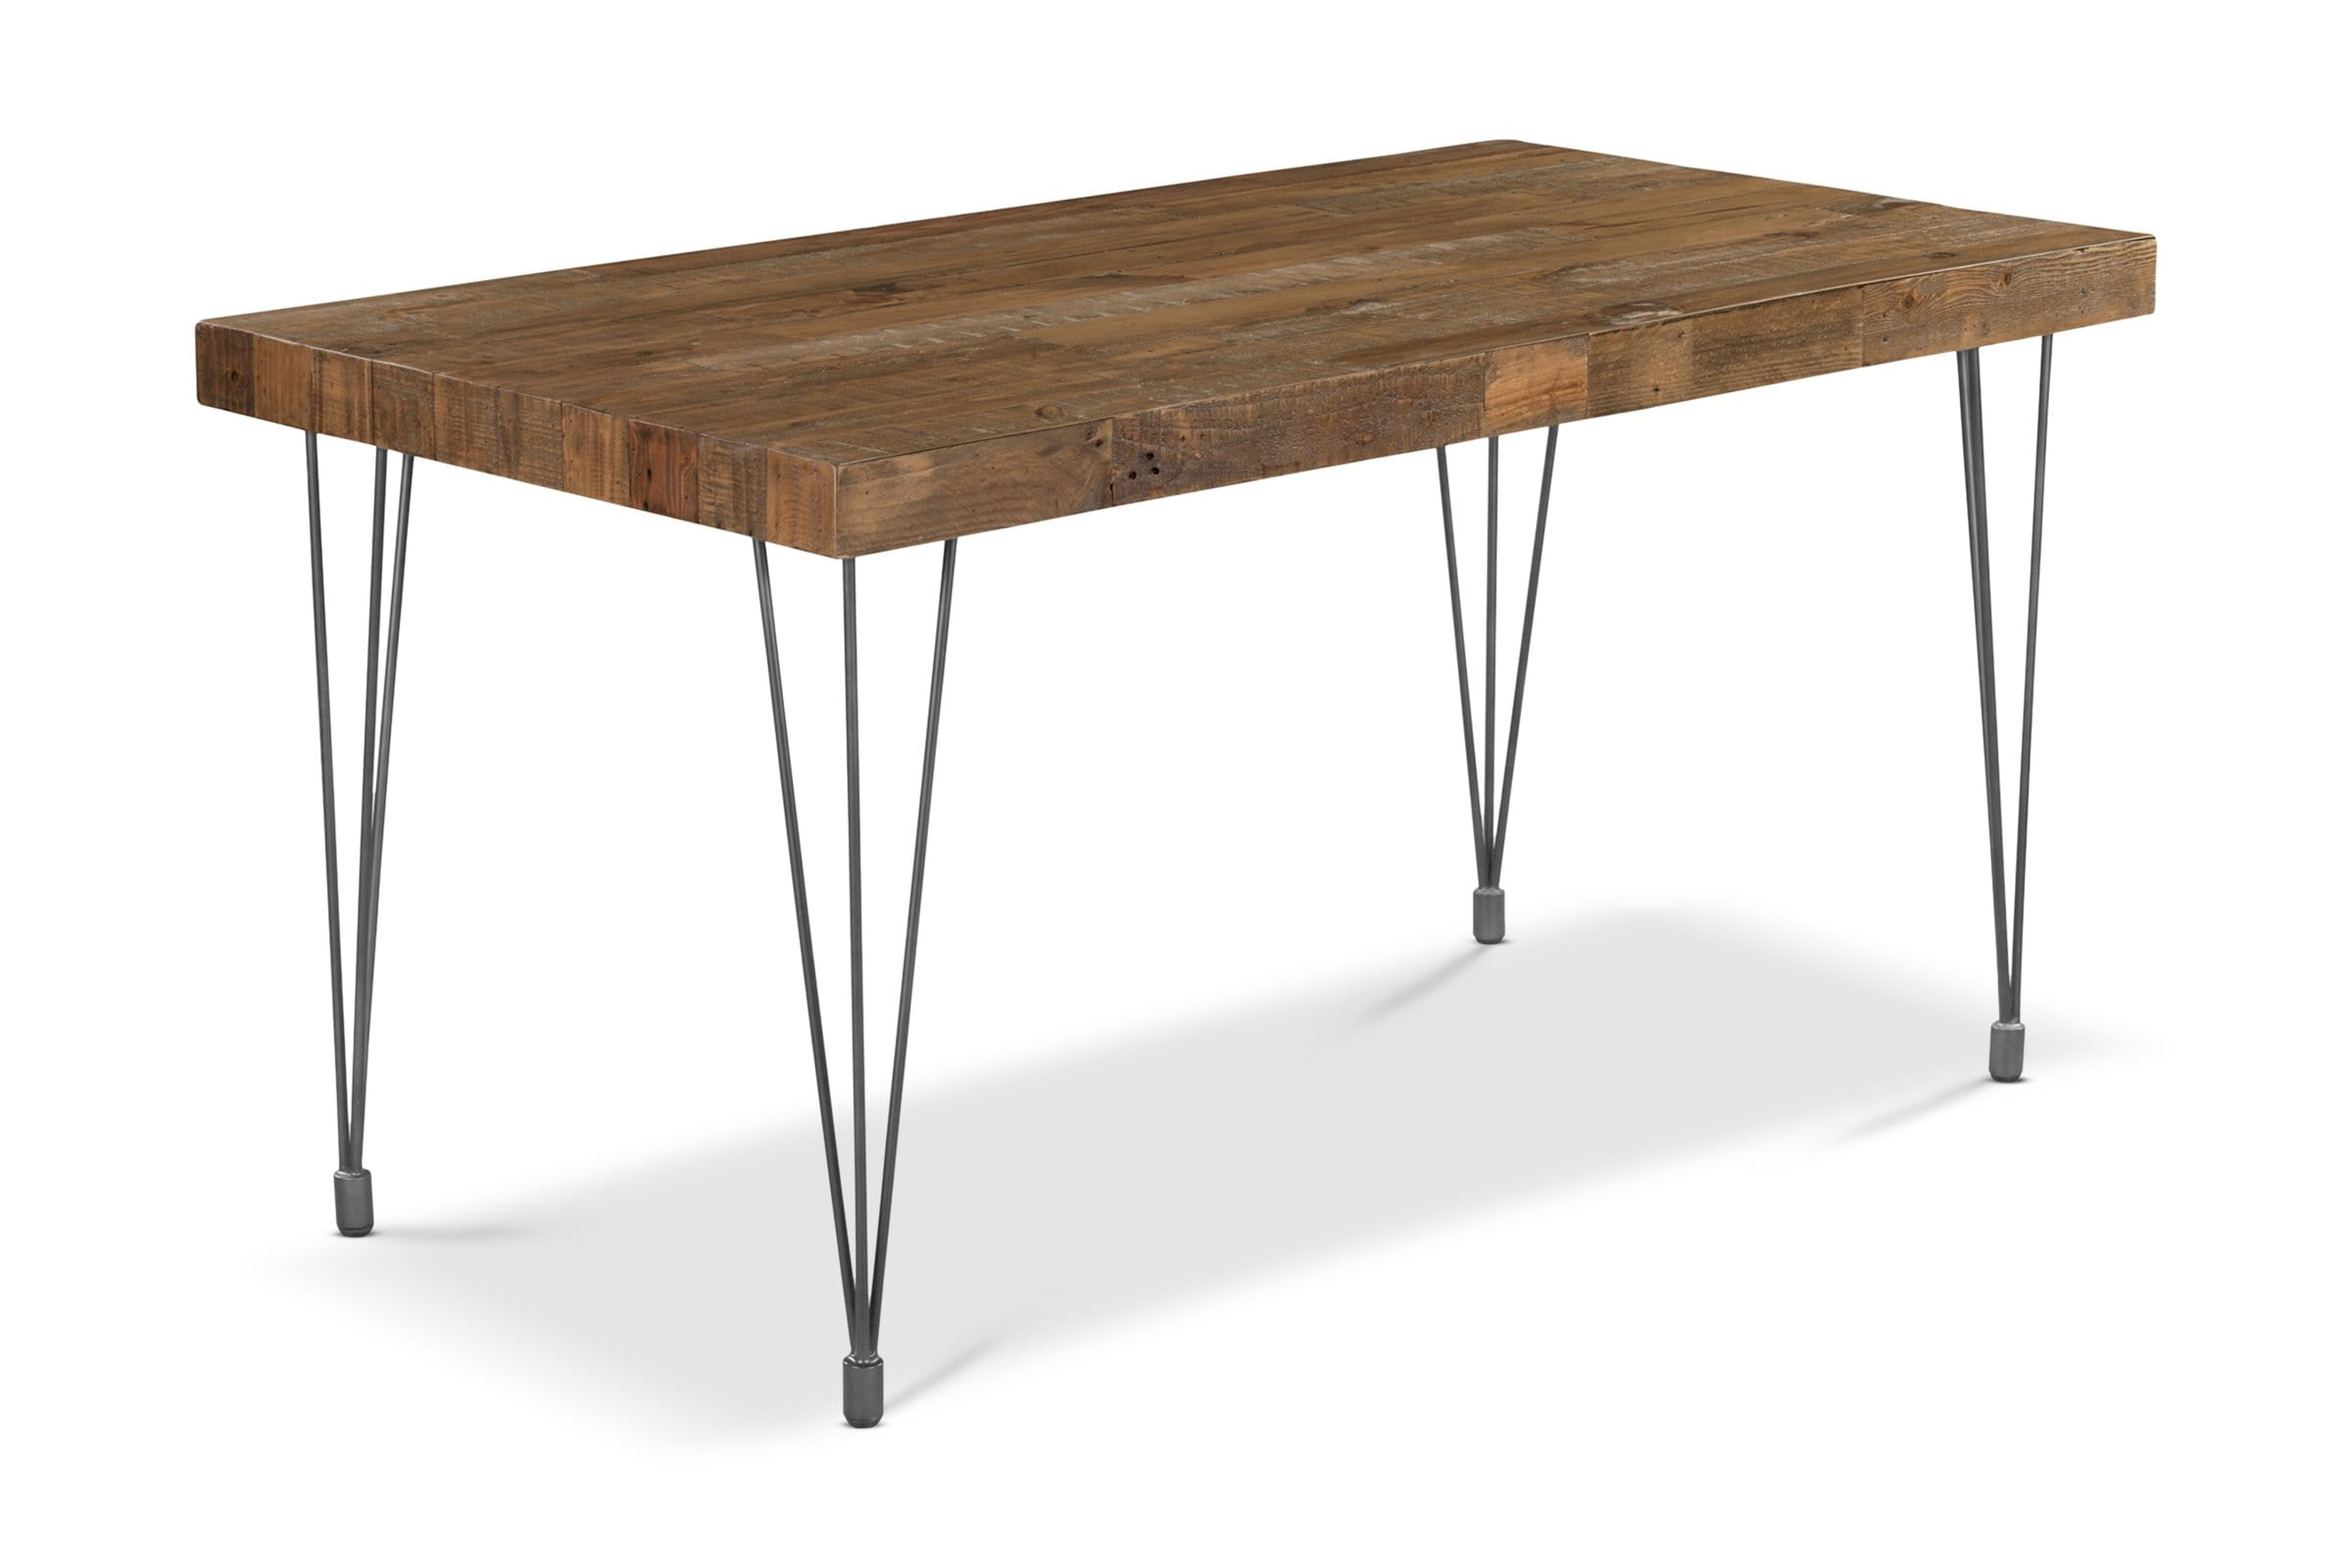 Parrish Dining Table - Modern Dining Tables Sold by Apt2B